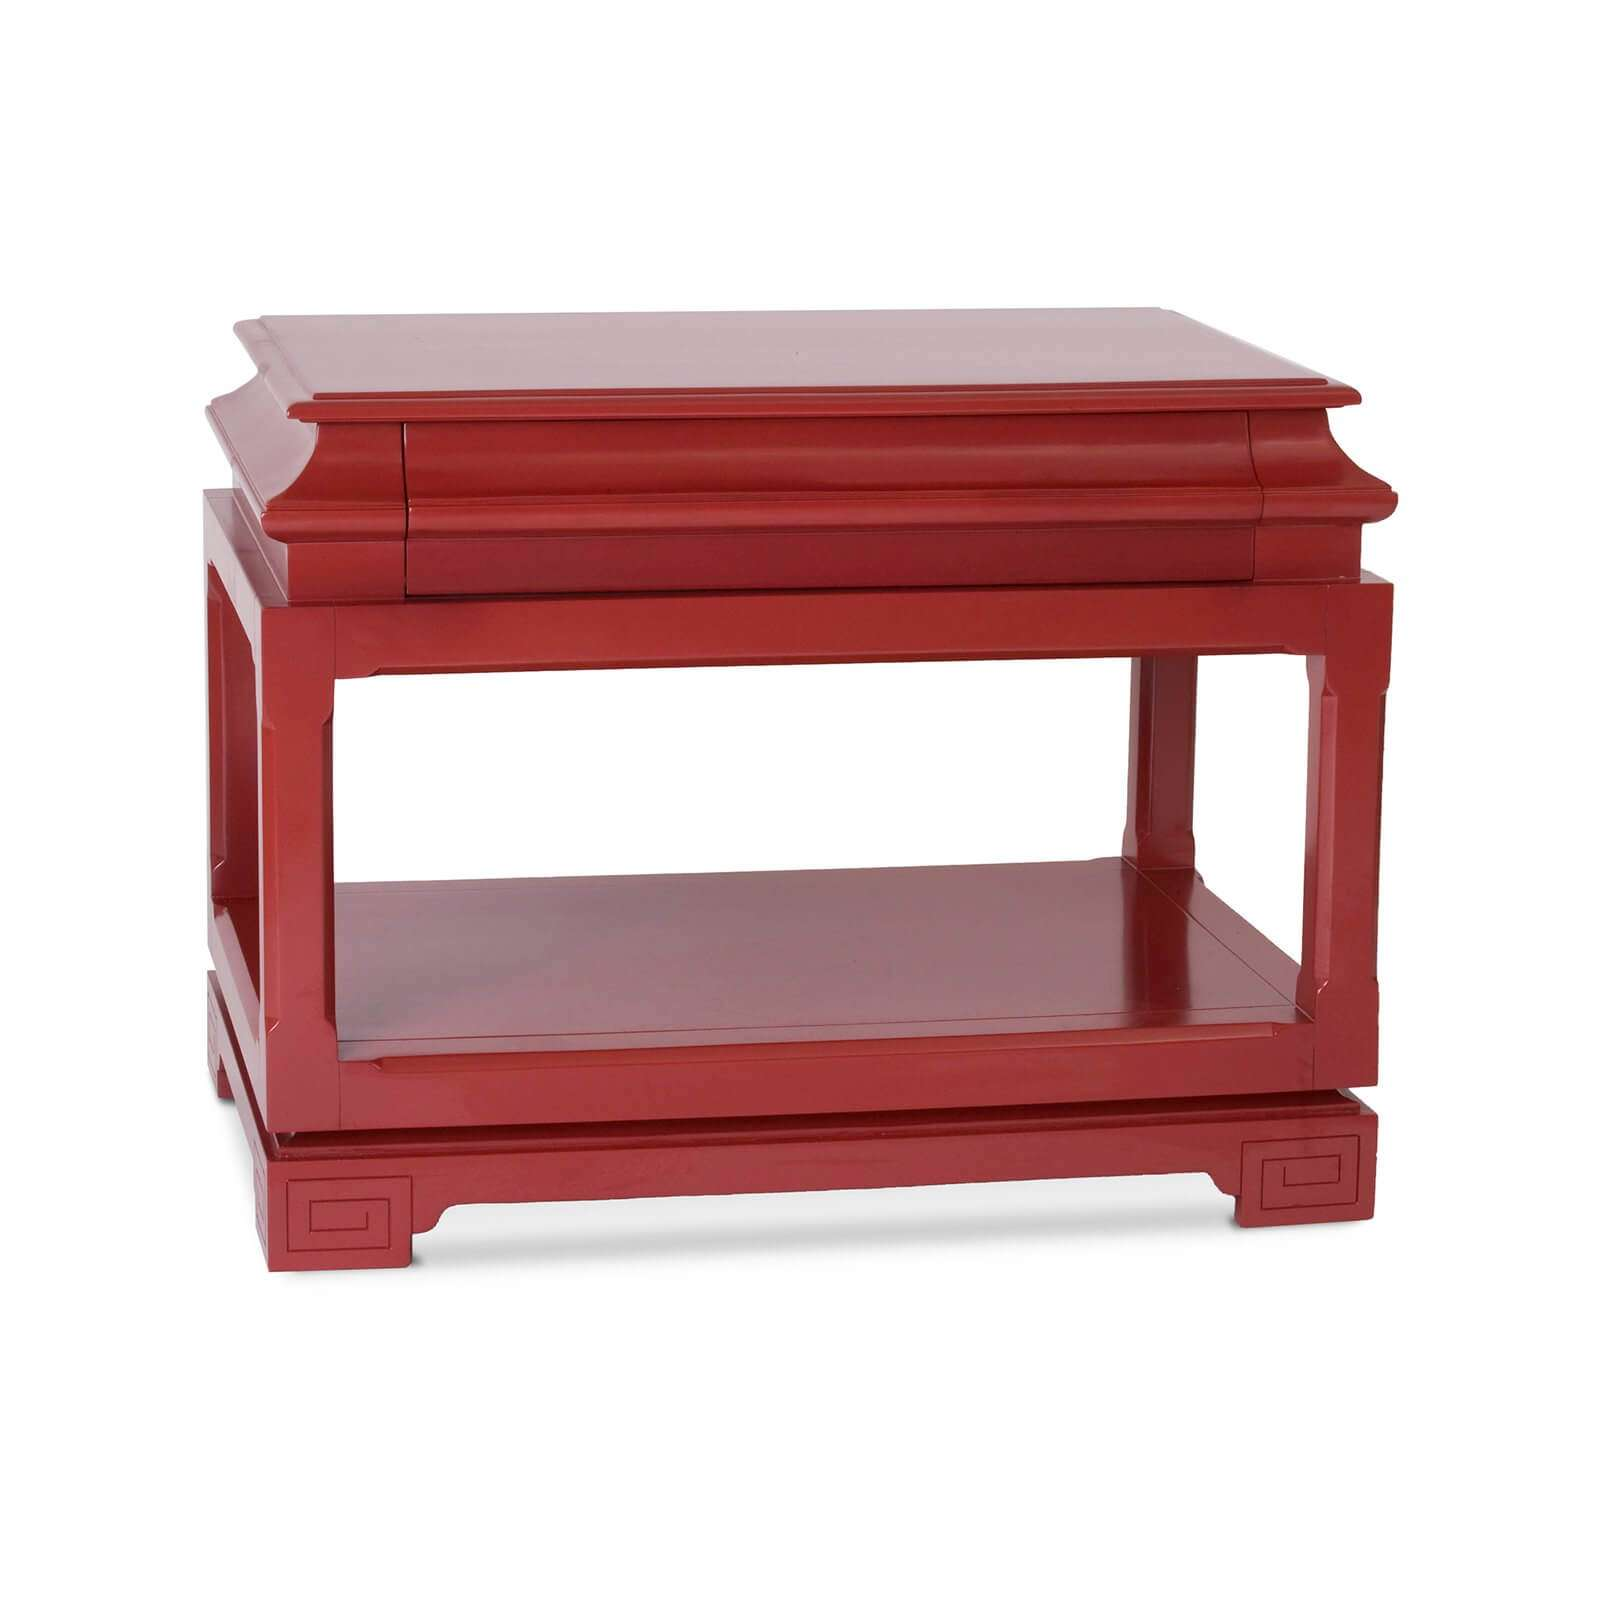 CANTON END TABLE